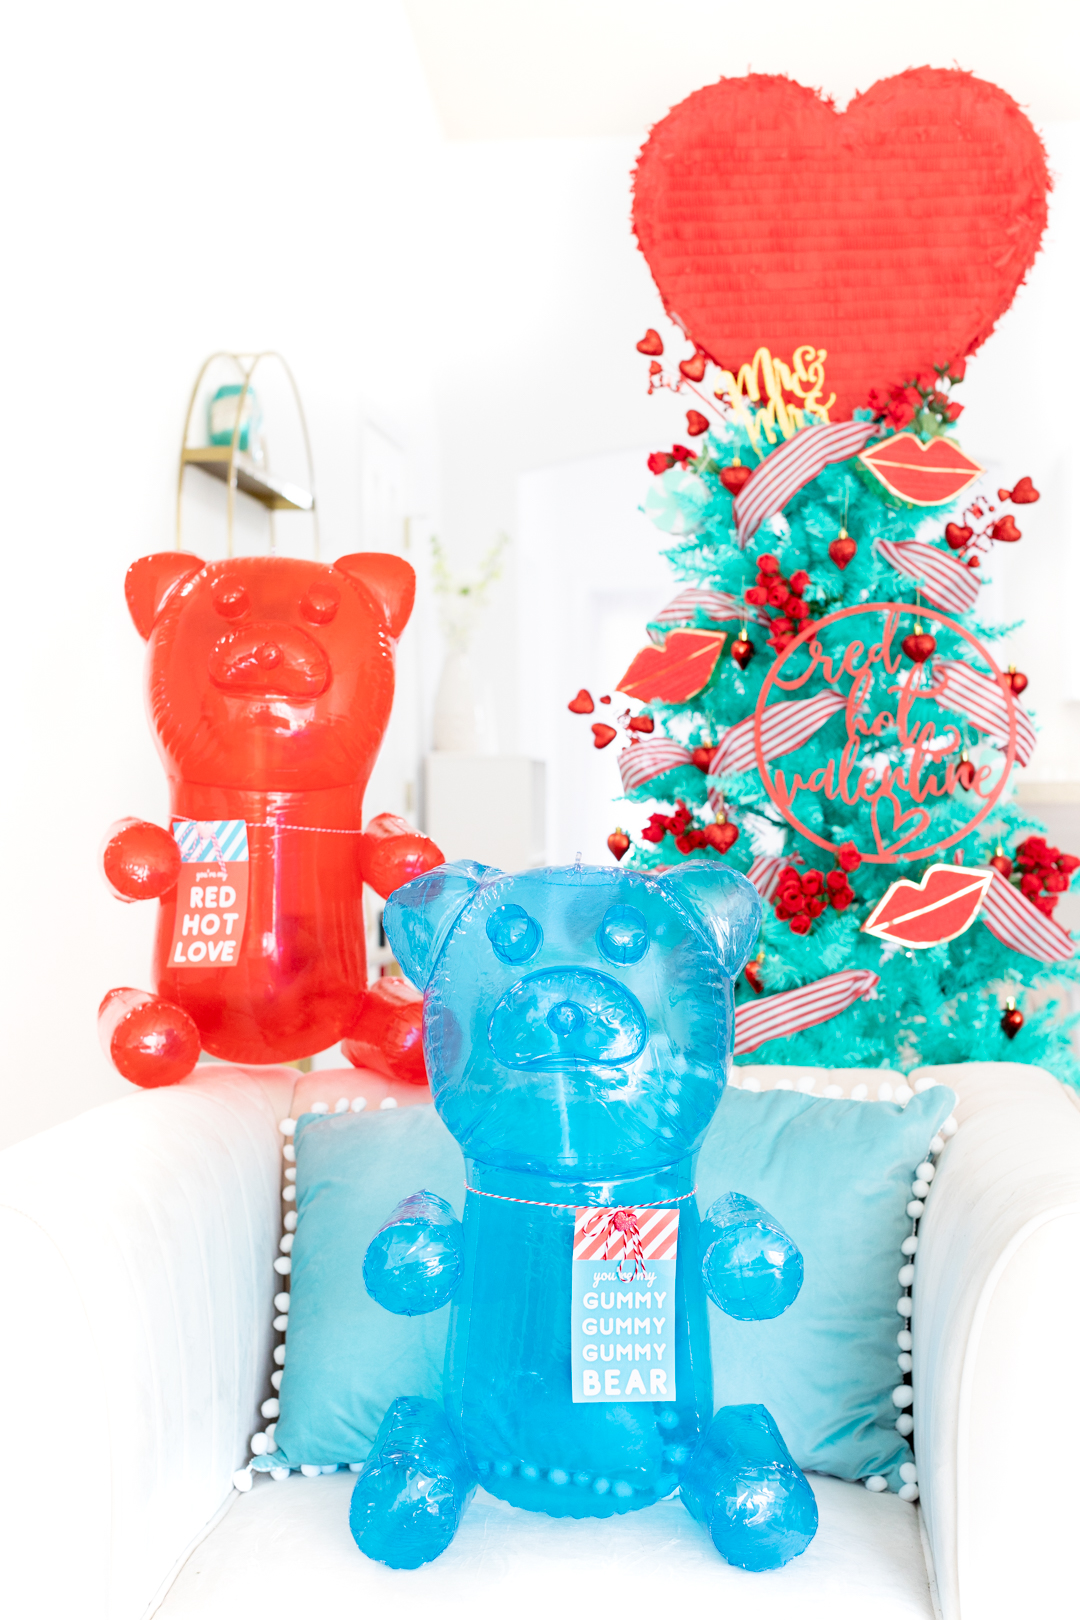 huge blow up gummy bears, perfect inexpensive diy gift for valentine's day